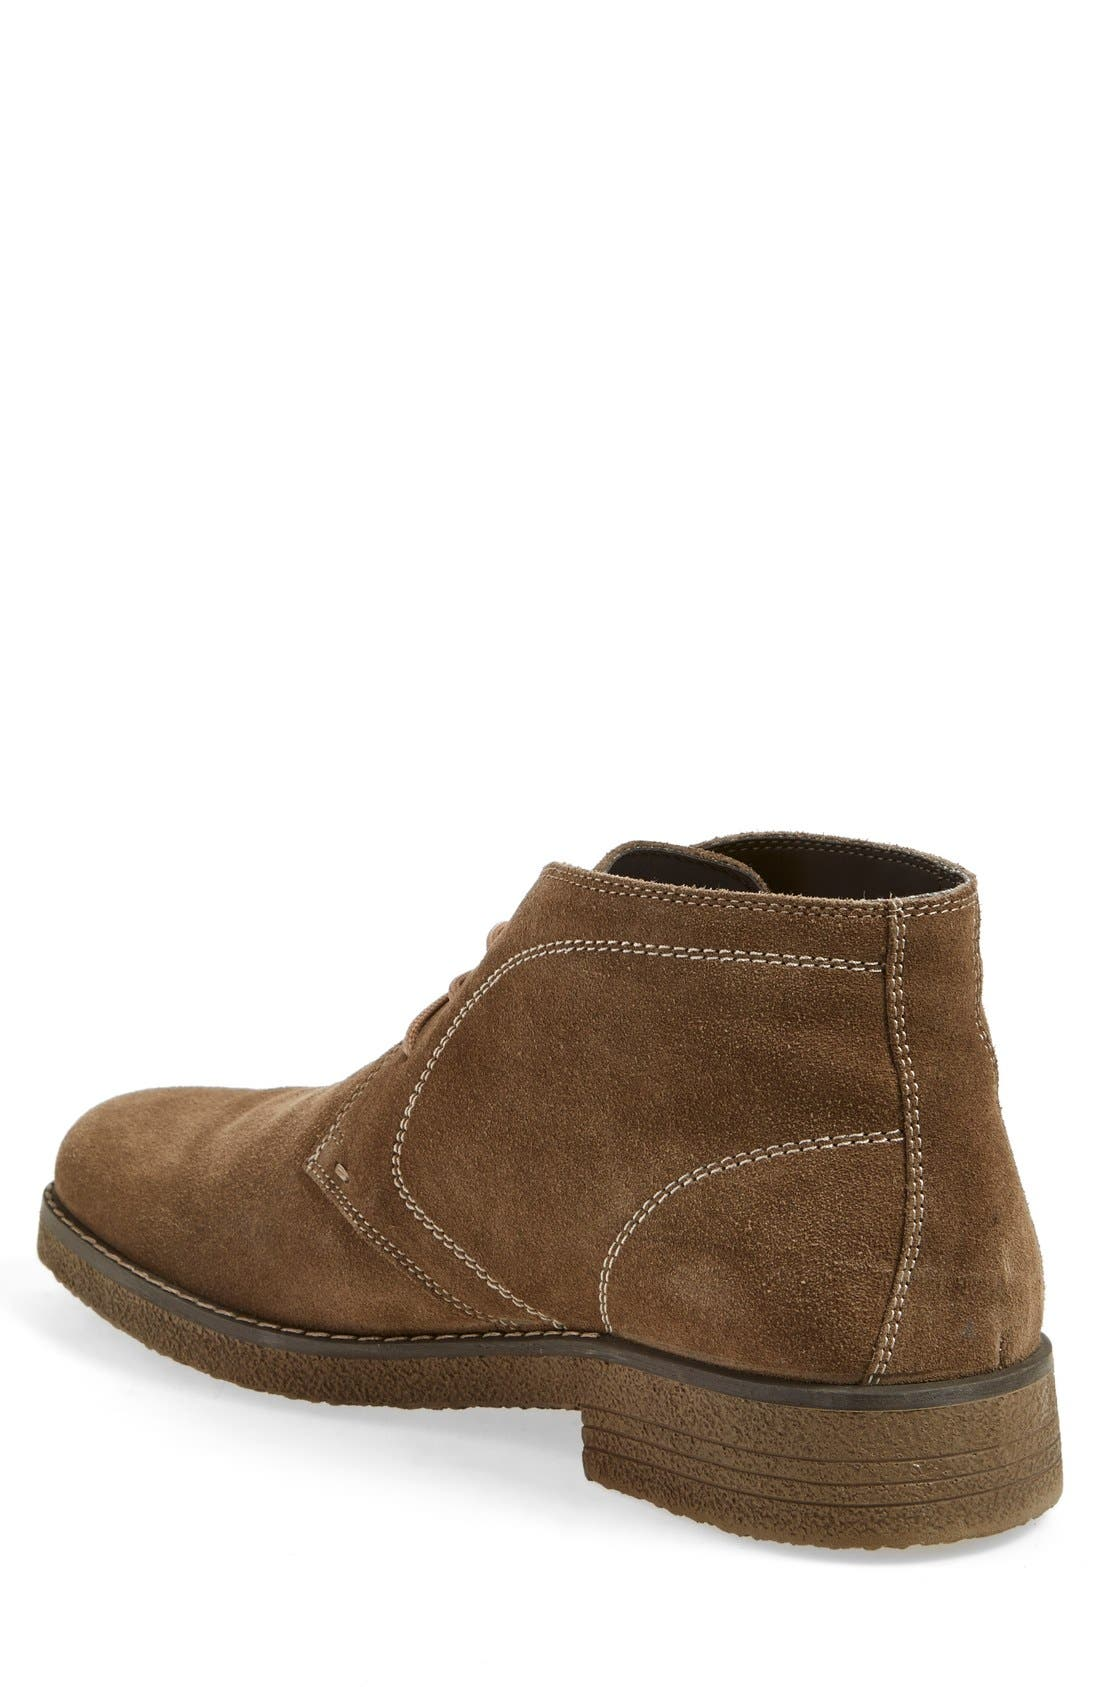 'Tyler' Chukka Boot,                             Alternate thumbnail 2, color,                             Taupe Suede